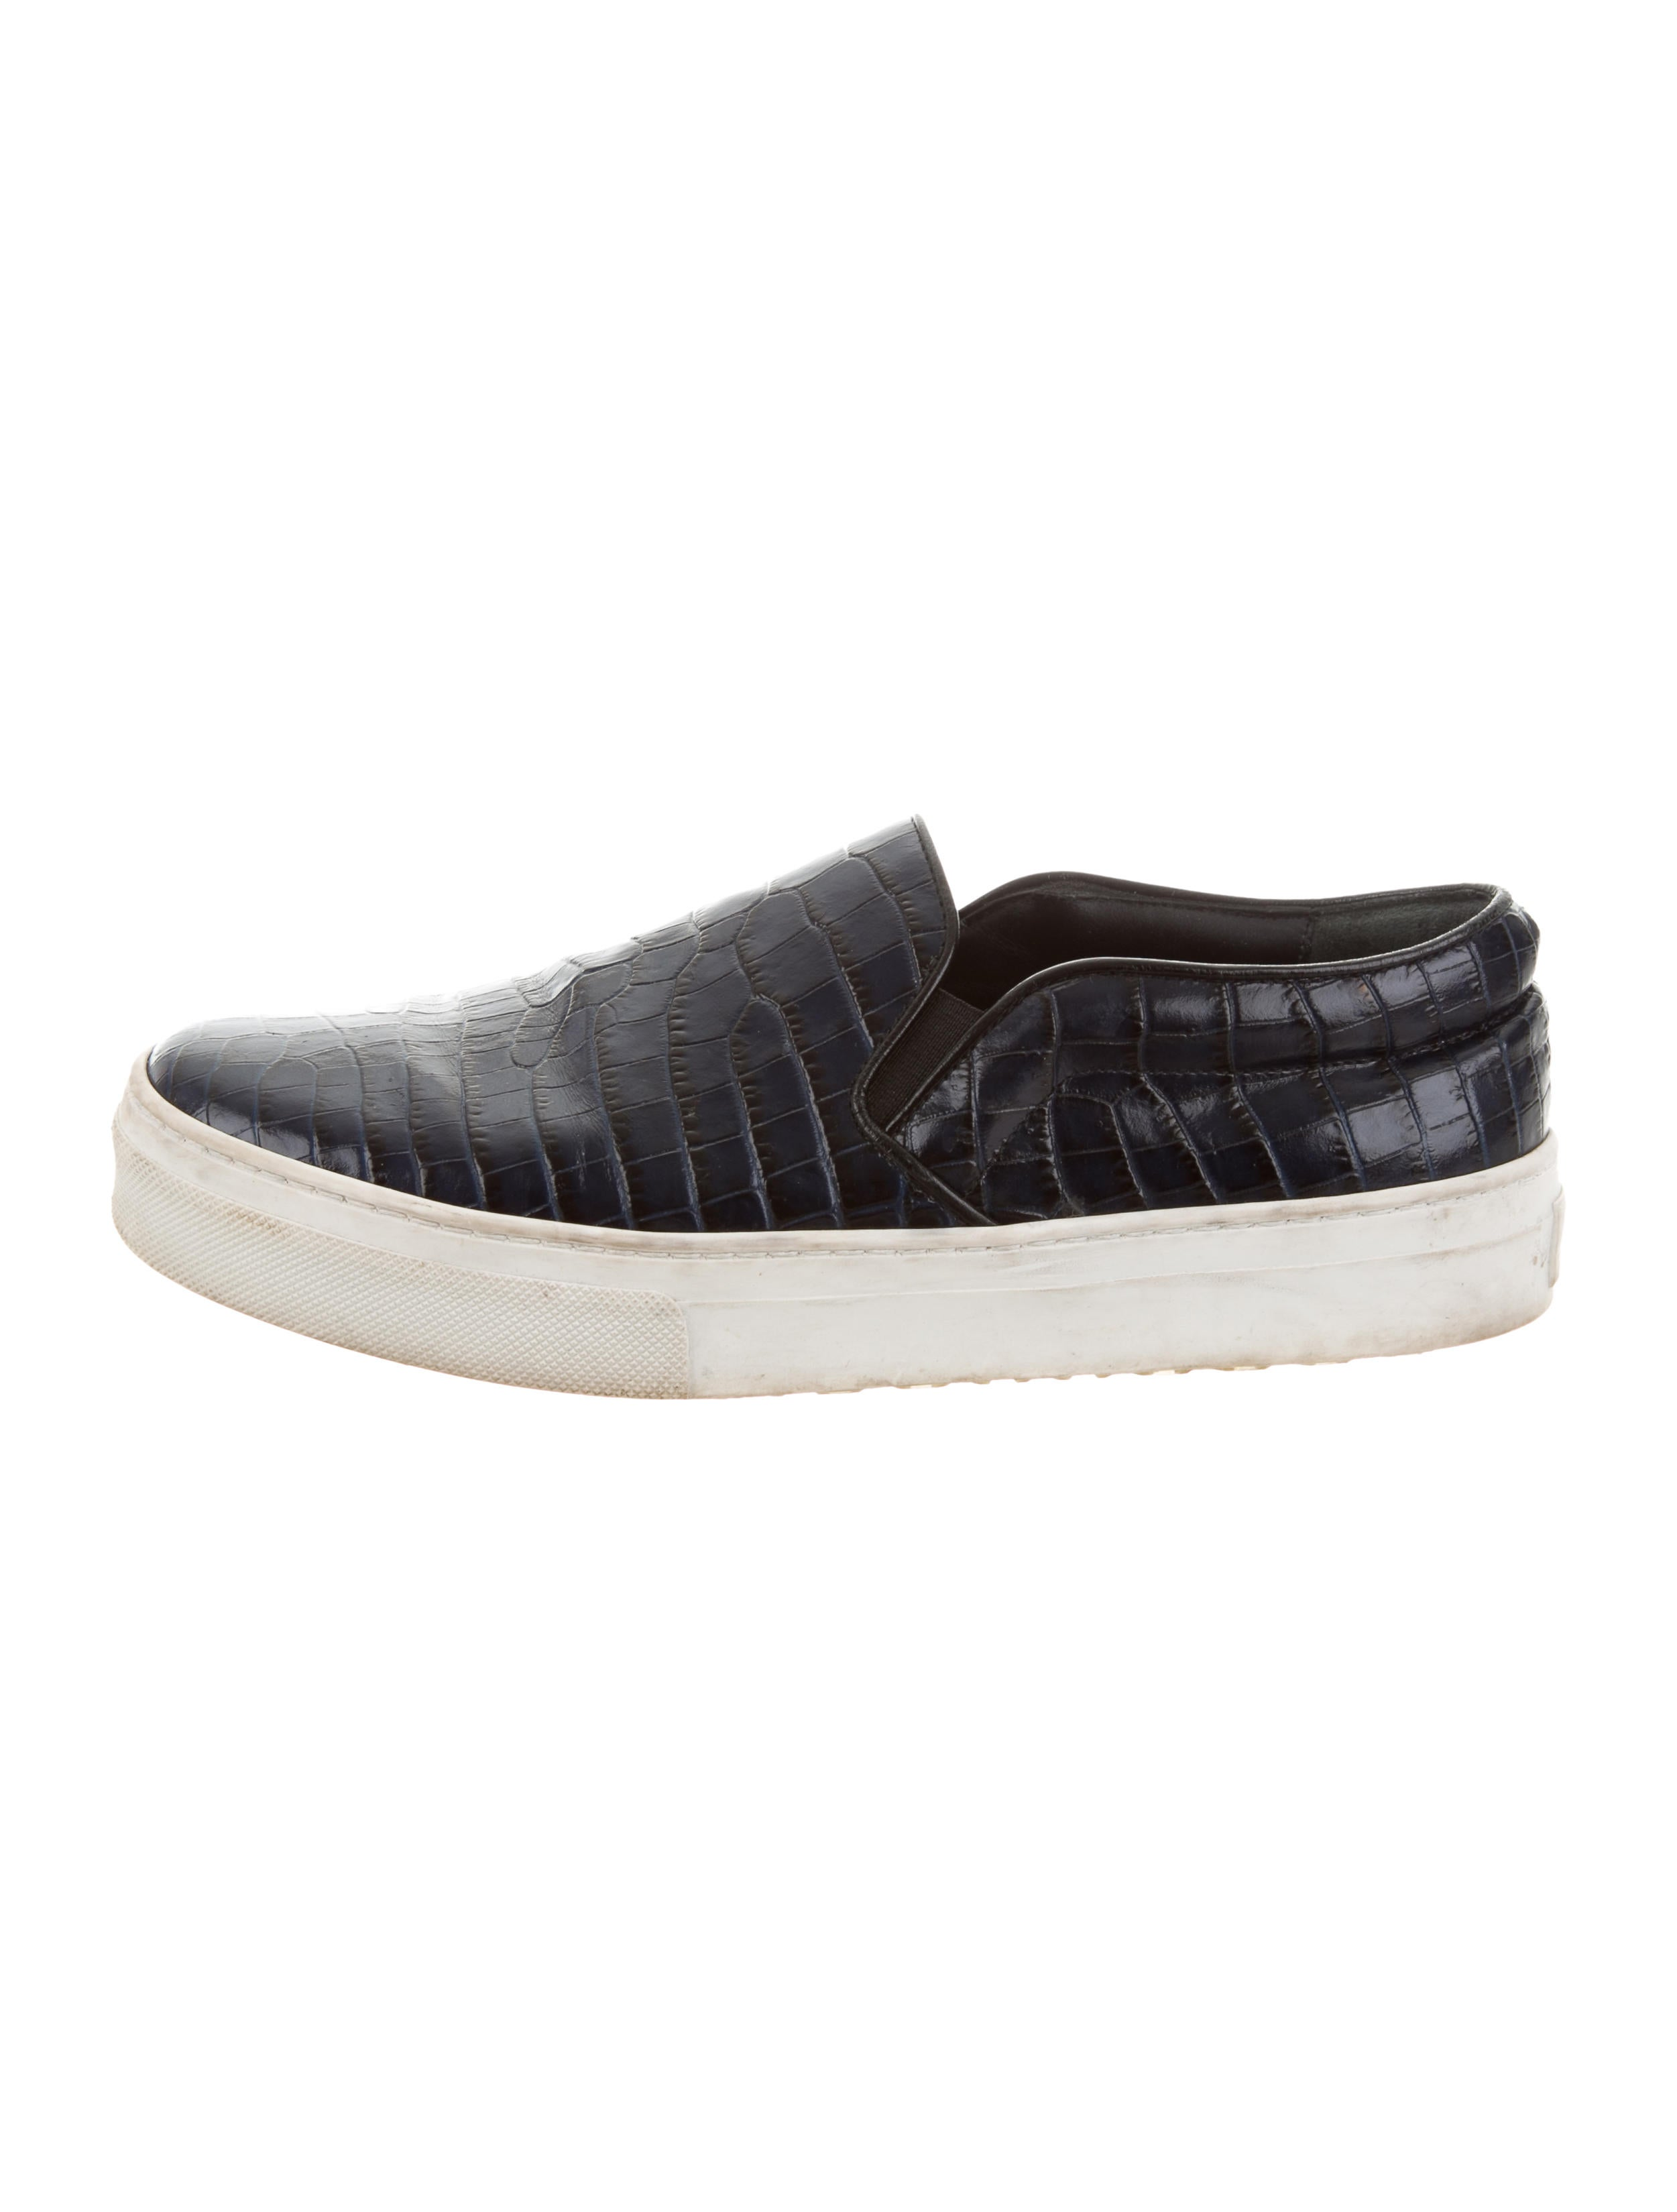 100% guaranteed online free shipping release dates Céline Embossed Slip-On Sneakers sale outlet locations JYSmHJ